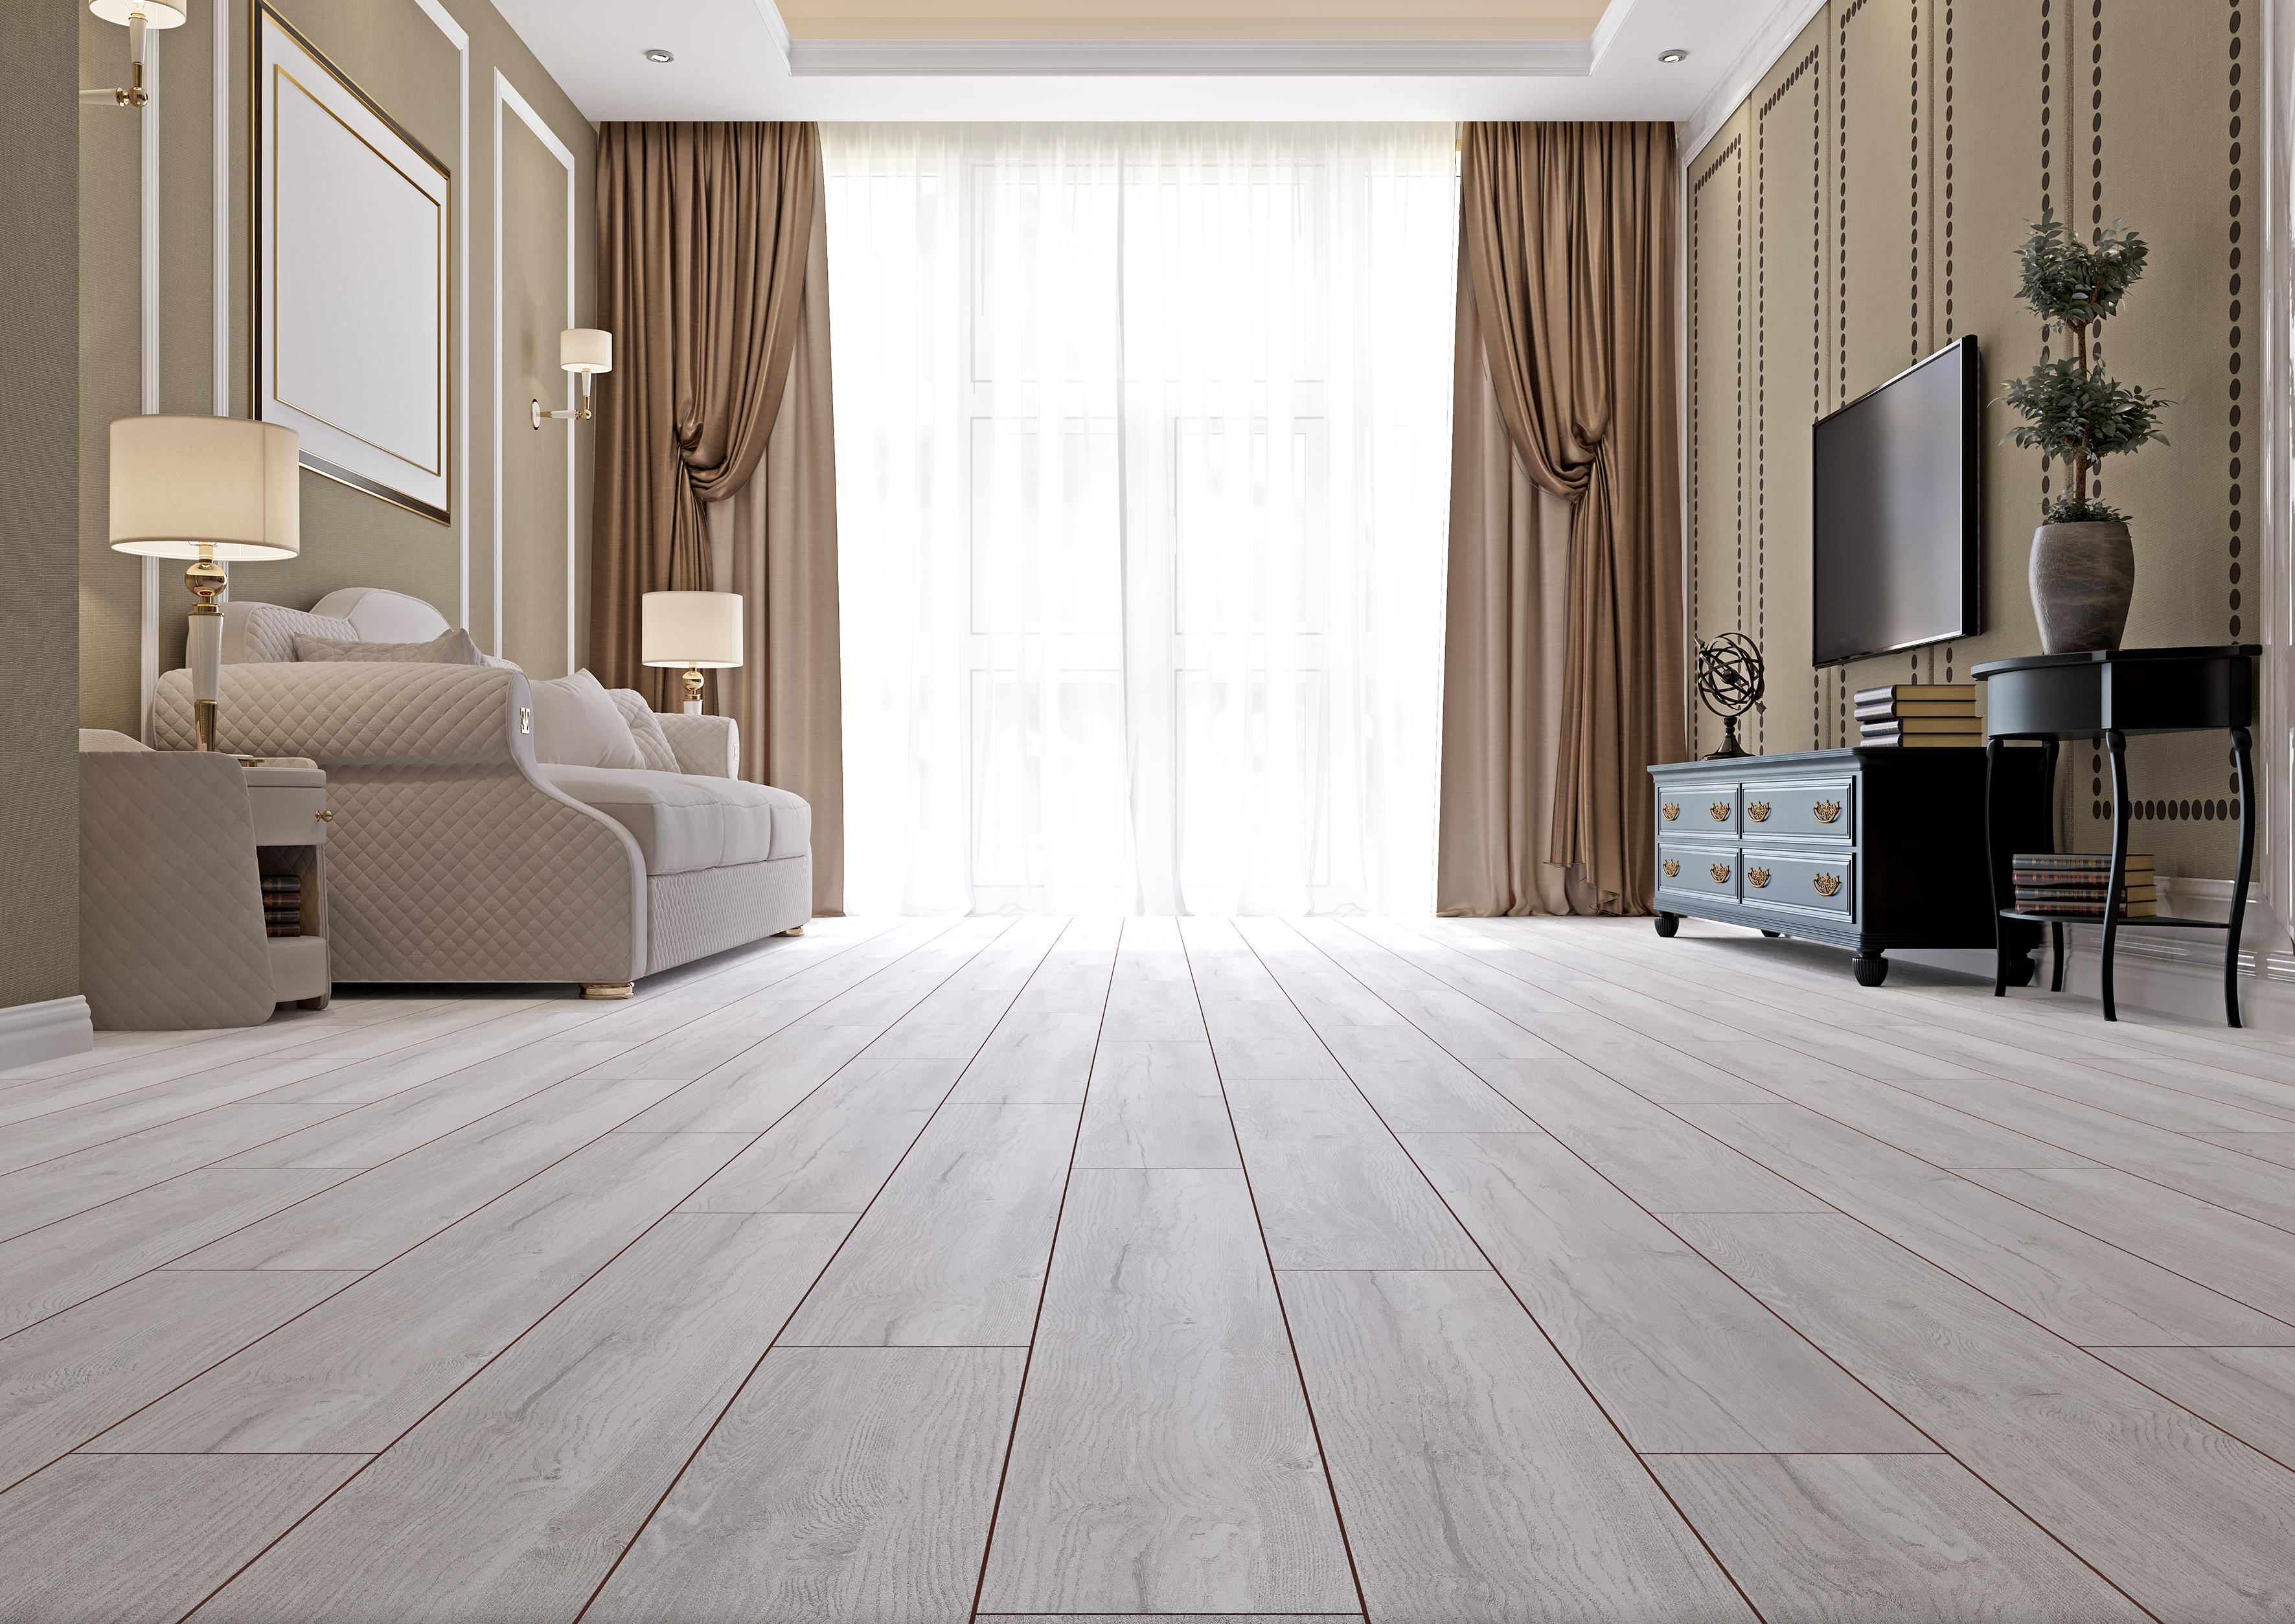 Swiss Krono Flooring Background